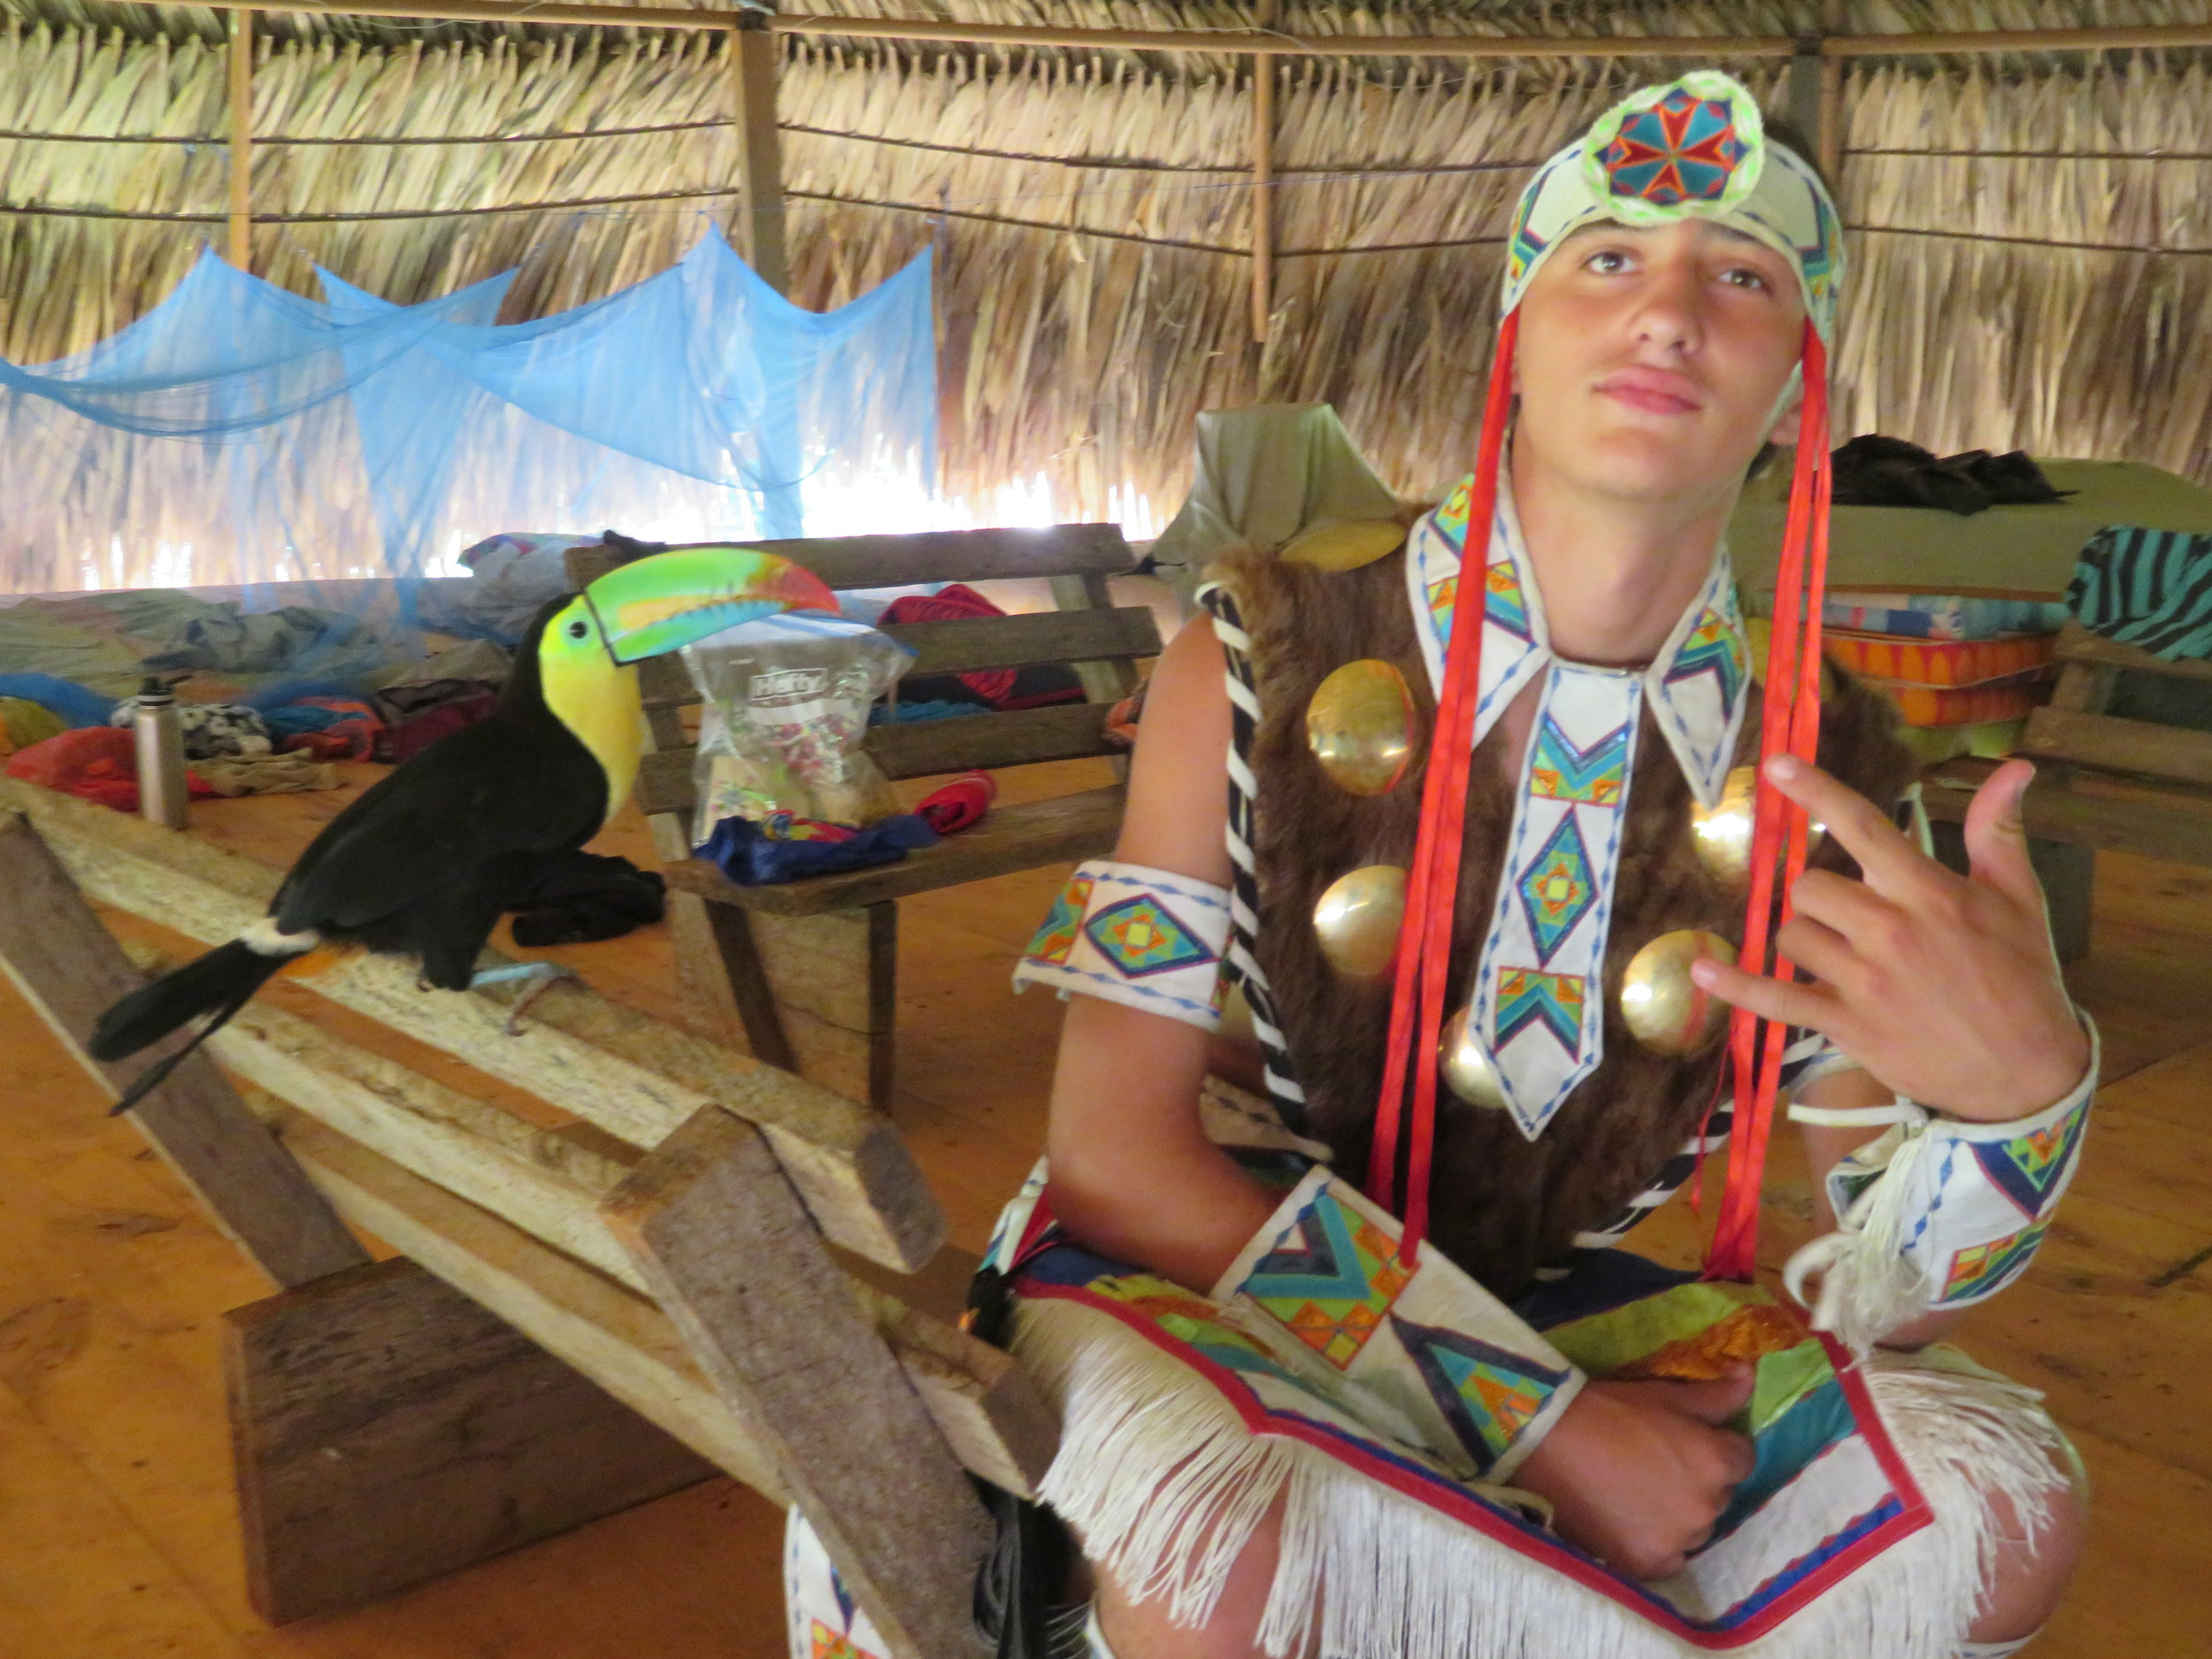 Hawk with his buddy Tony the Tucan in Embera Quera community of Panama, Central America